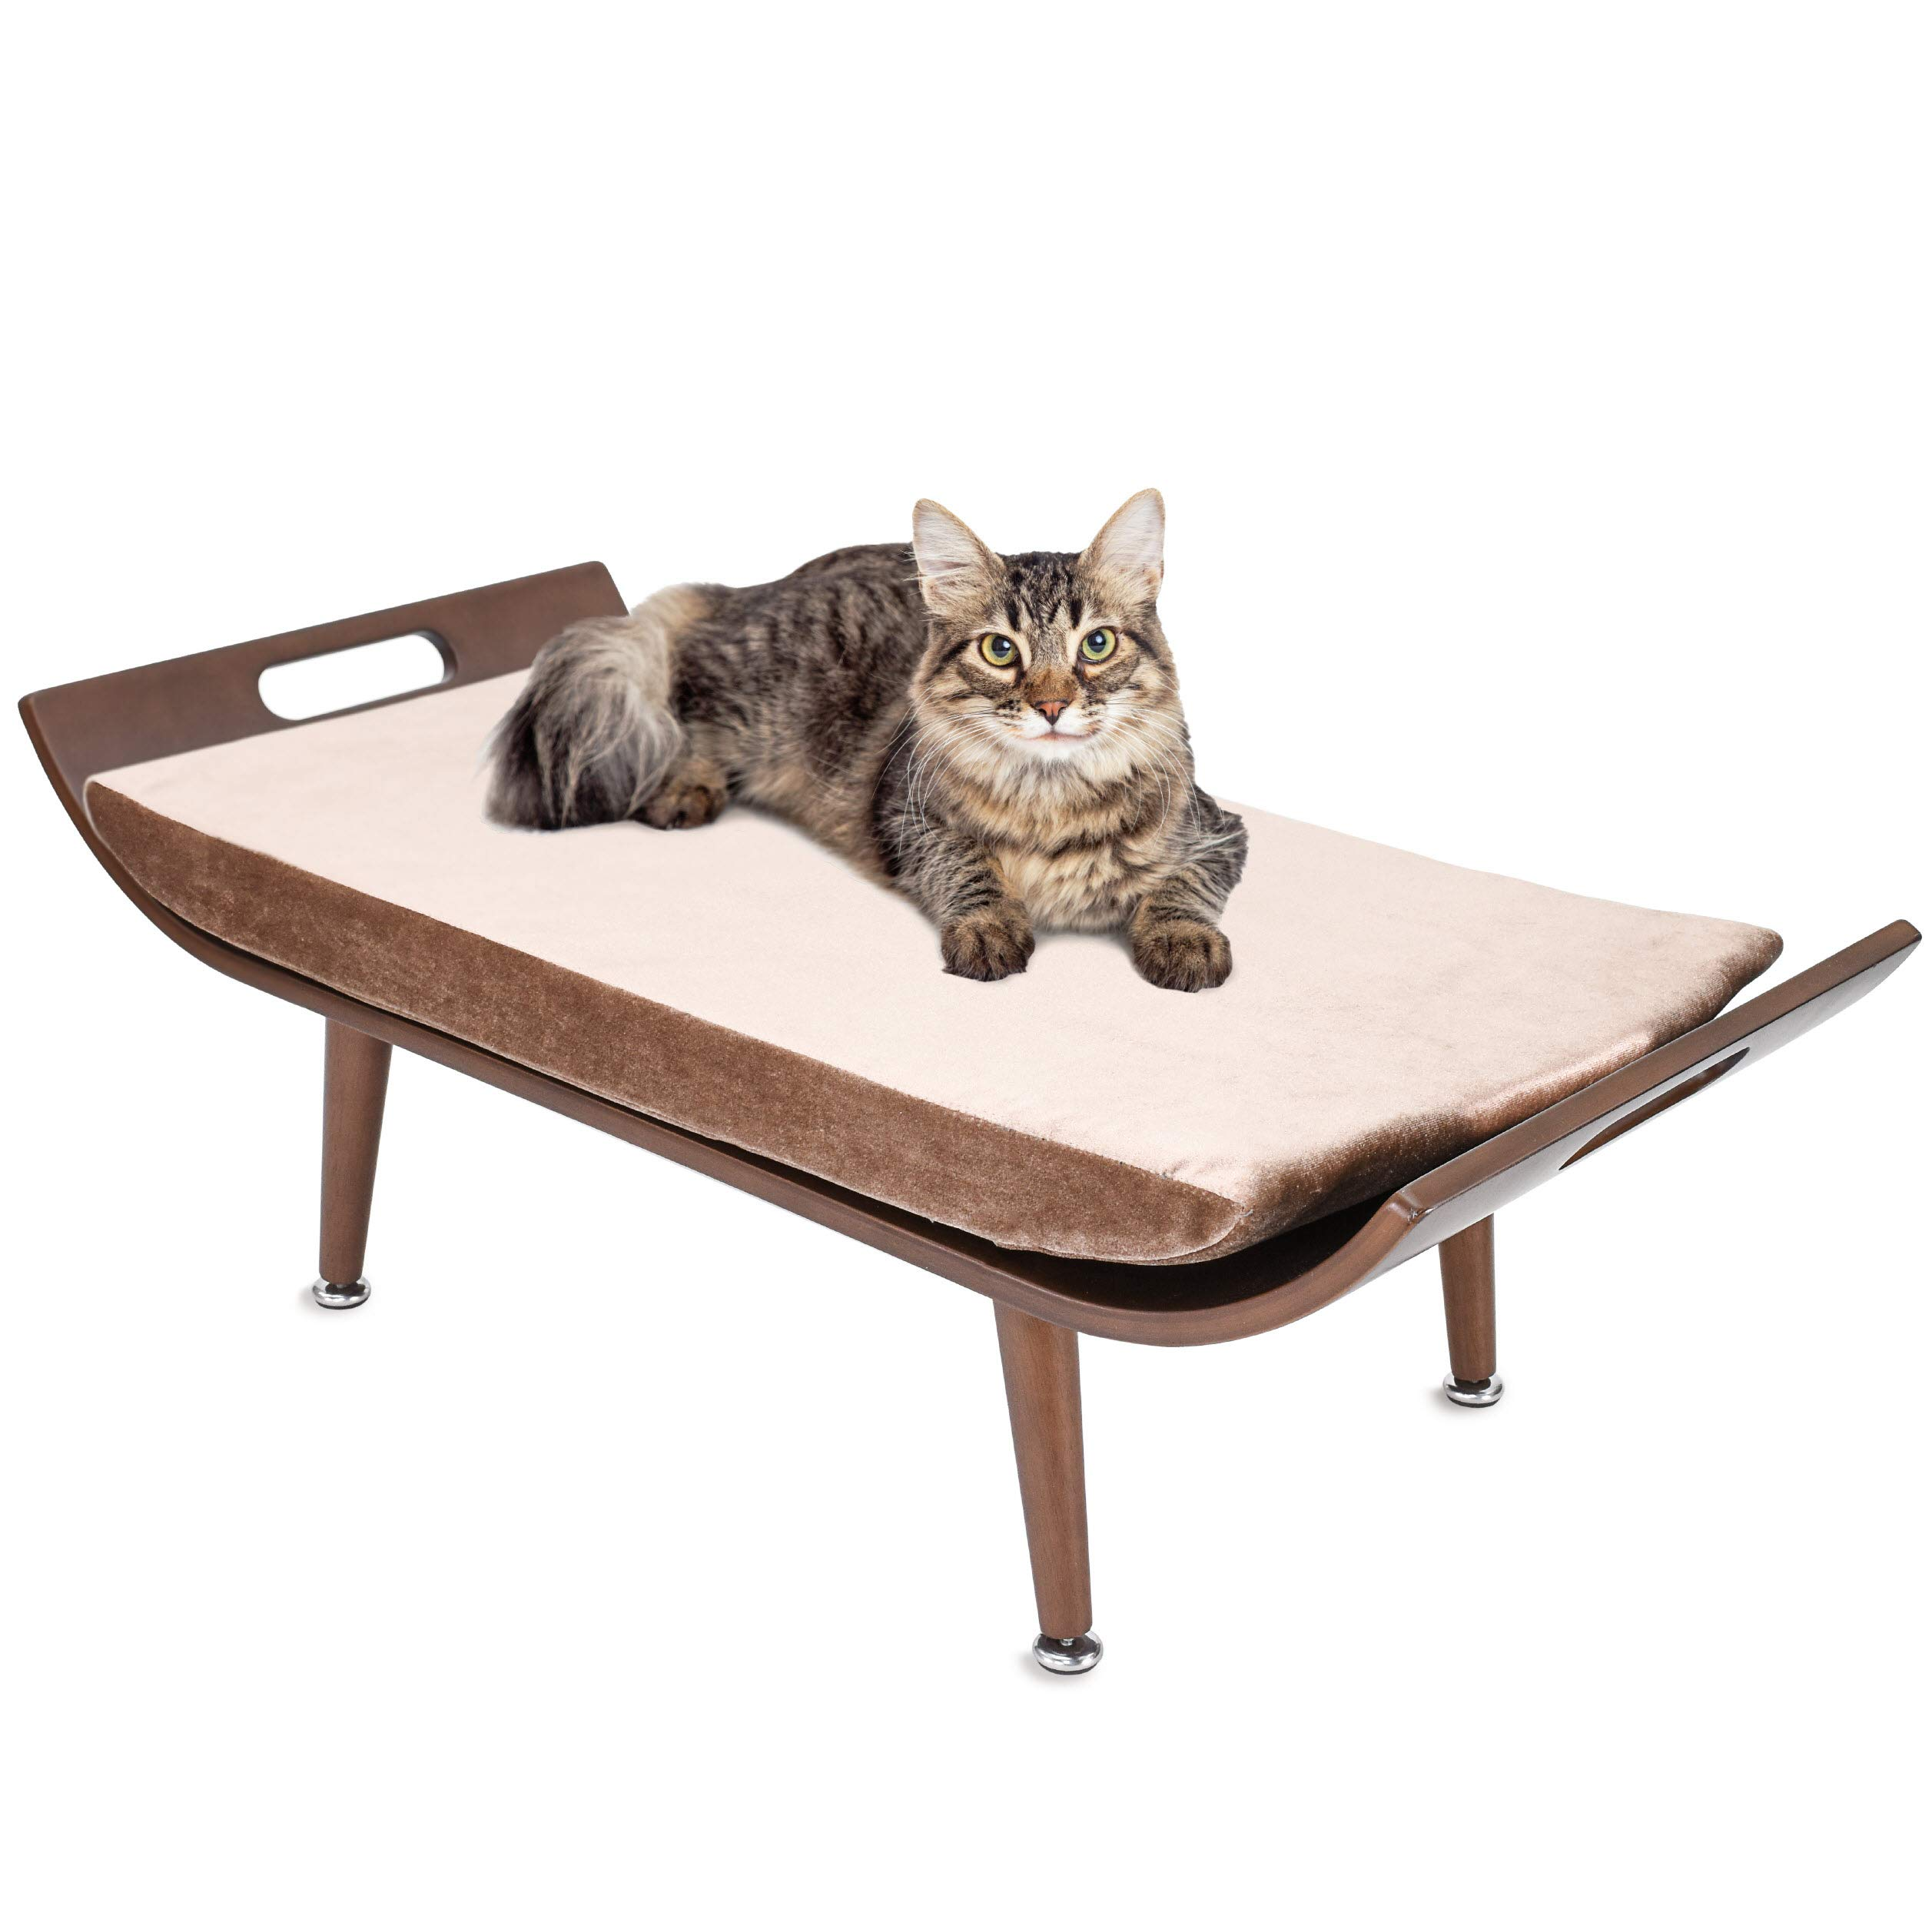 Penn Plax Luxury Cat Bed Lounger, Mid Century Modern Cat Furniture, For All Size of Cats by Penn Plax